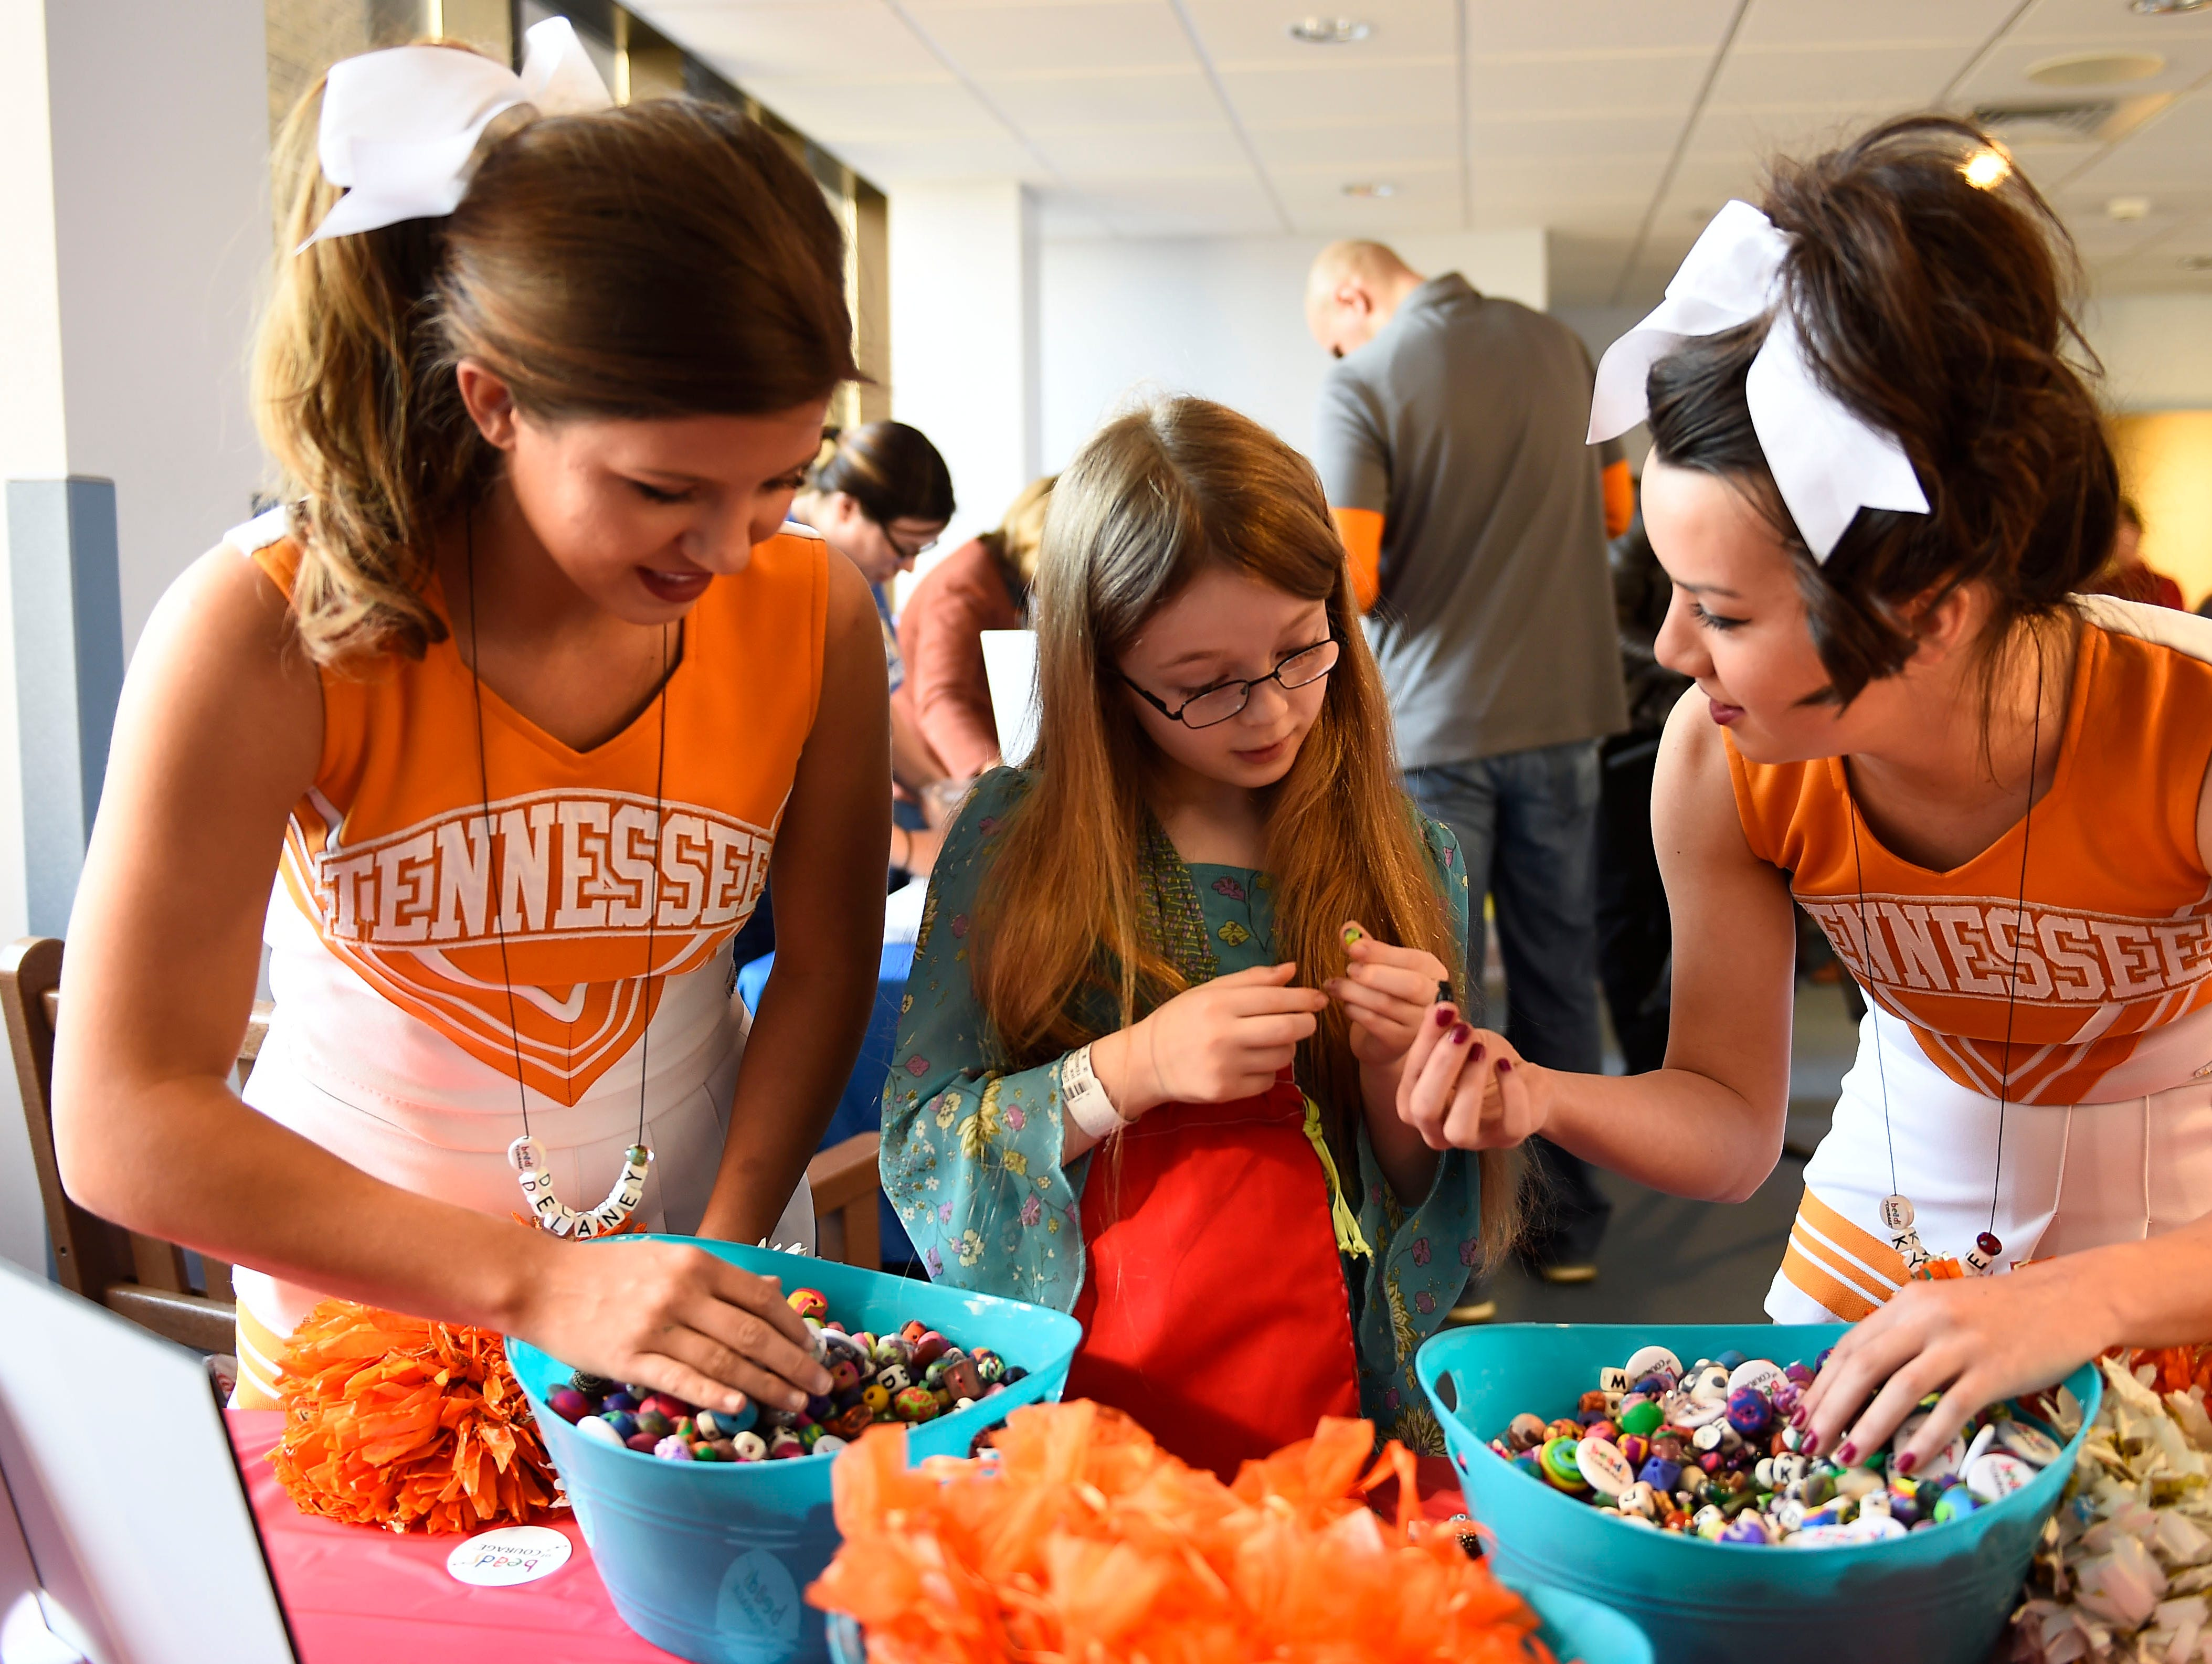 University of Tennessee cheerleaders Delaney Burton, left, and Kylee Dick, right, help patient Emilie Gregg choose beads during the launch for the Beads of Courage program at the East Tennessee Children's Hospital Wednesday, Jan. 28, 2015. Patients collect beads to serve as symbols of courage to honor and acknowledge each step of their treatment journey.